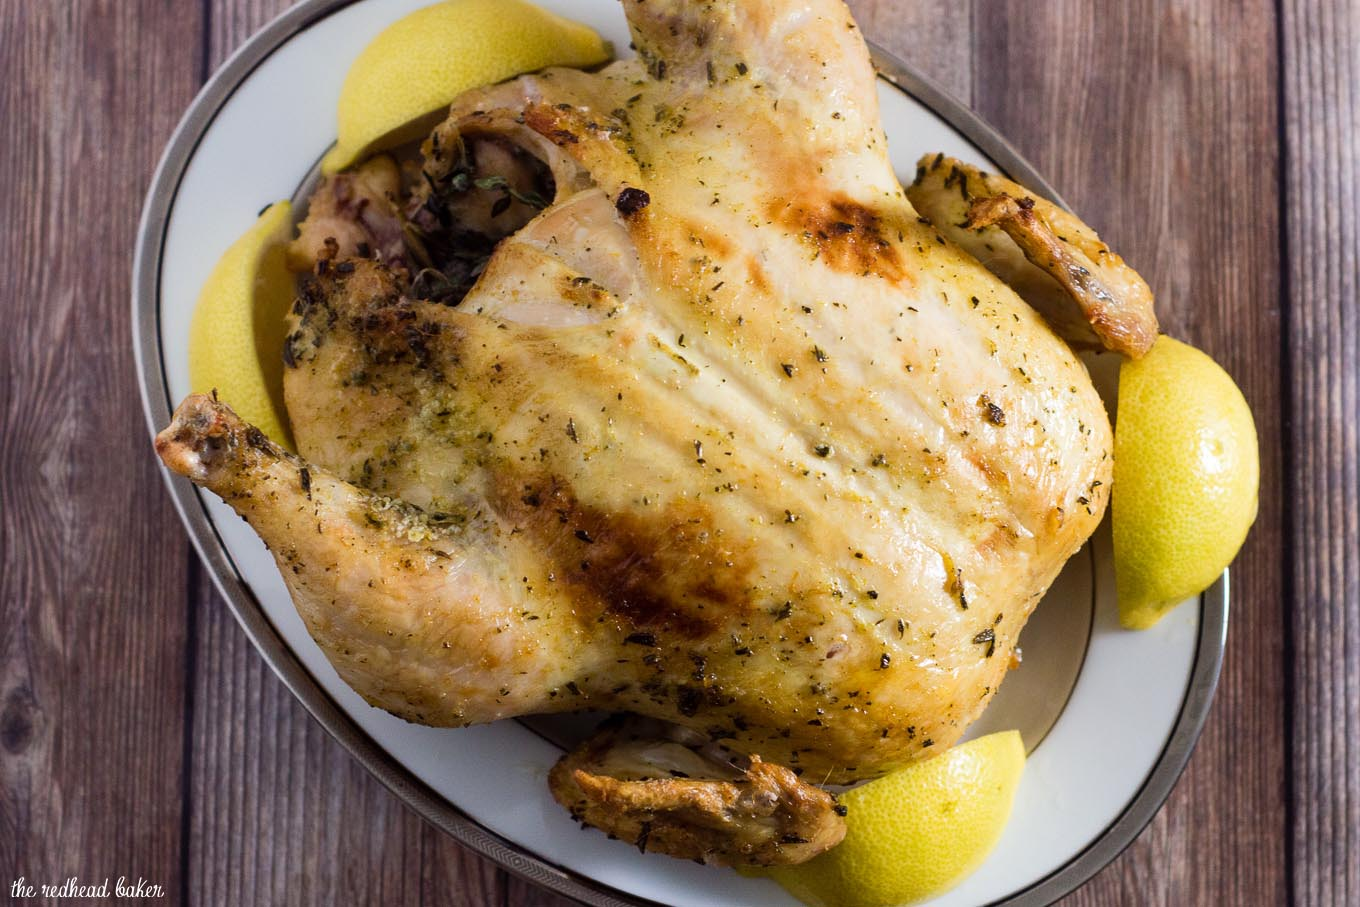 Herb-and-Citrus Dry-Brined Turkey imparts all of the flavor of a traditional wet brine without the hassle and refrigerator space. So little effort for so much reward!